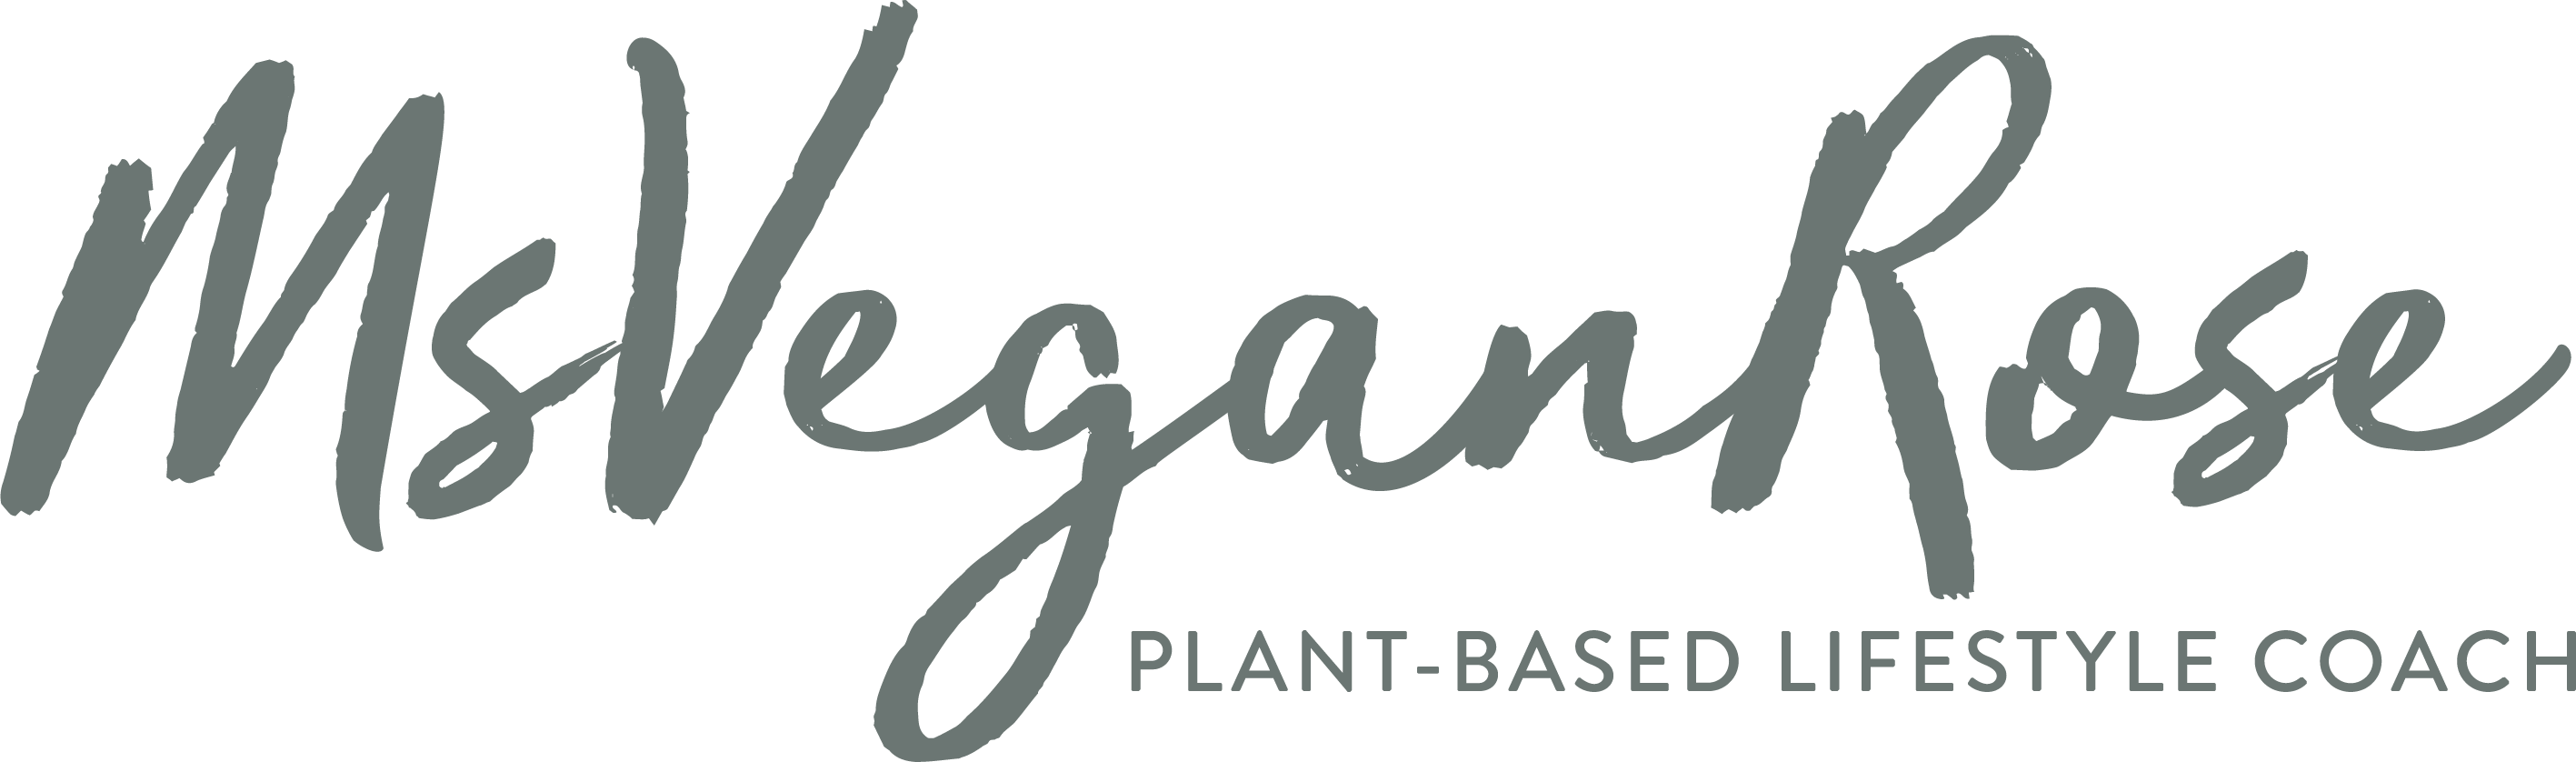 Create THE logo for my new plant-based/vegan lifestyle coaching business.